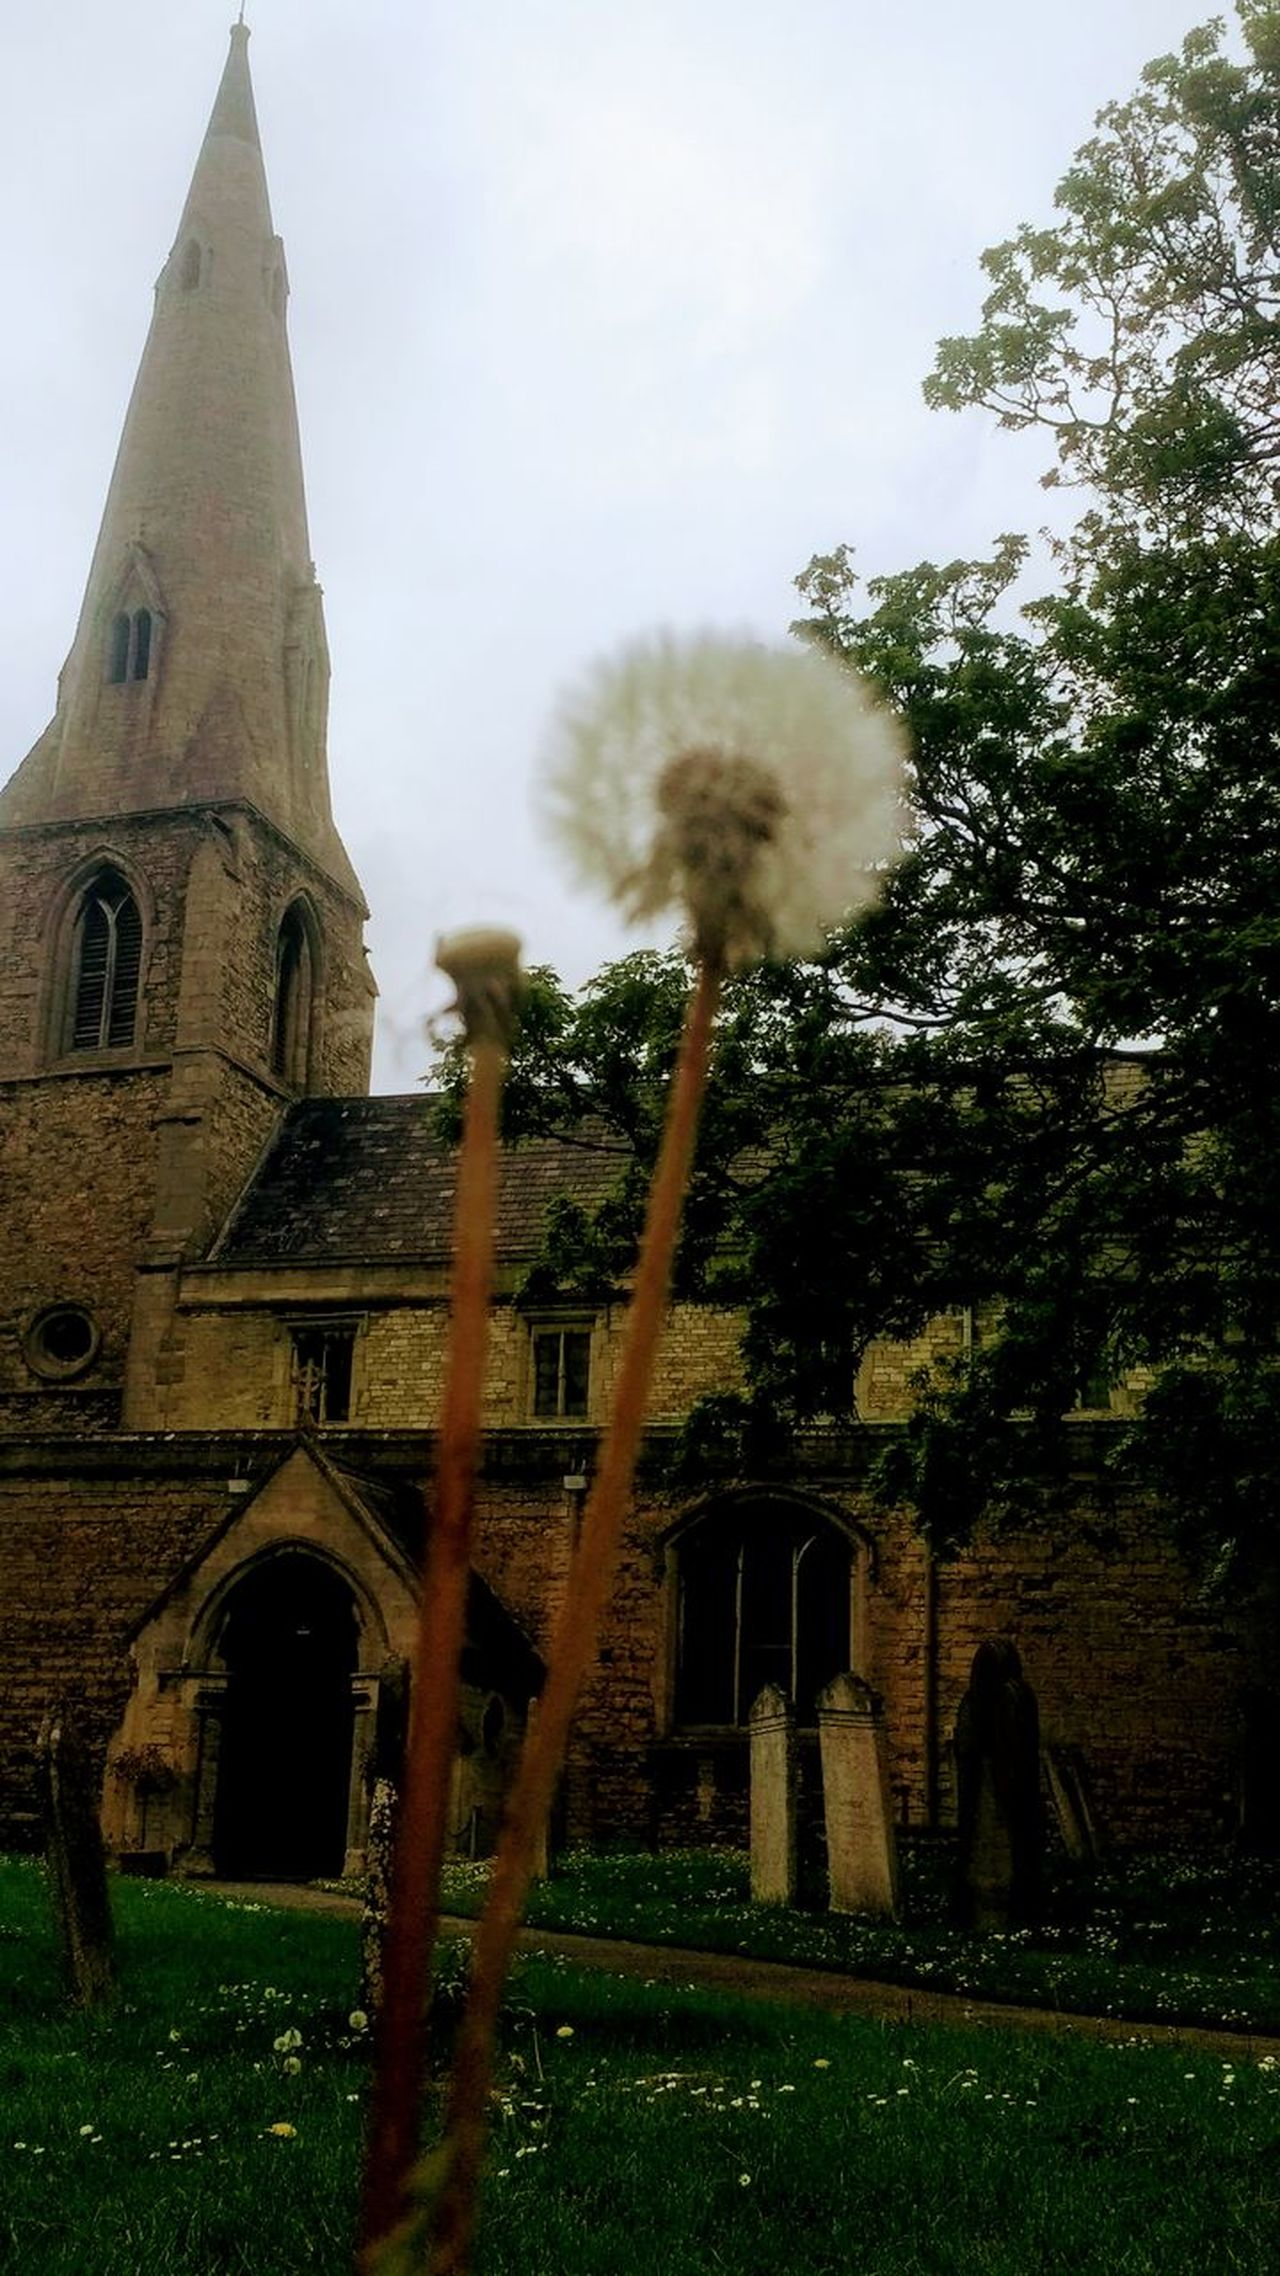 Architecture Built Structure Religion Outdoors No People Day Sky Building Exterior Tree Nature Photography Flower Fragility Dandelions Dandelion Church Architecture Church Church Buildings Architecture Travel Destinations England United Kingdom Peterborough Cambridgeshire